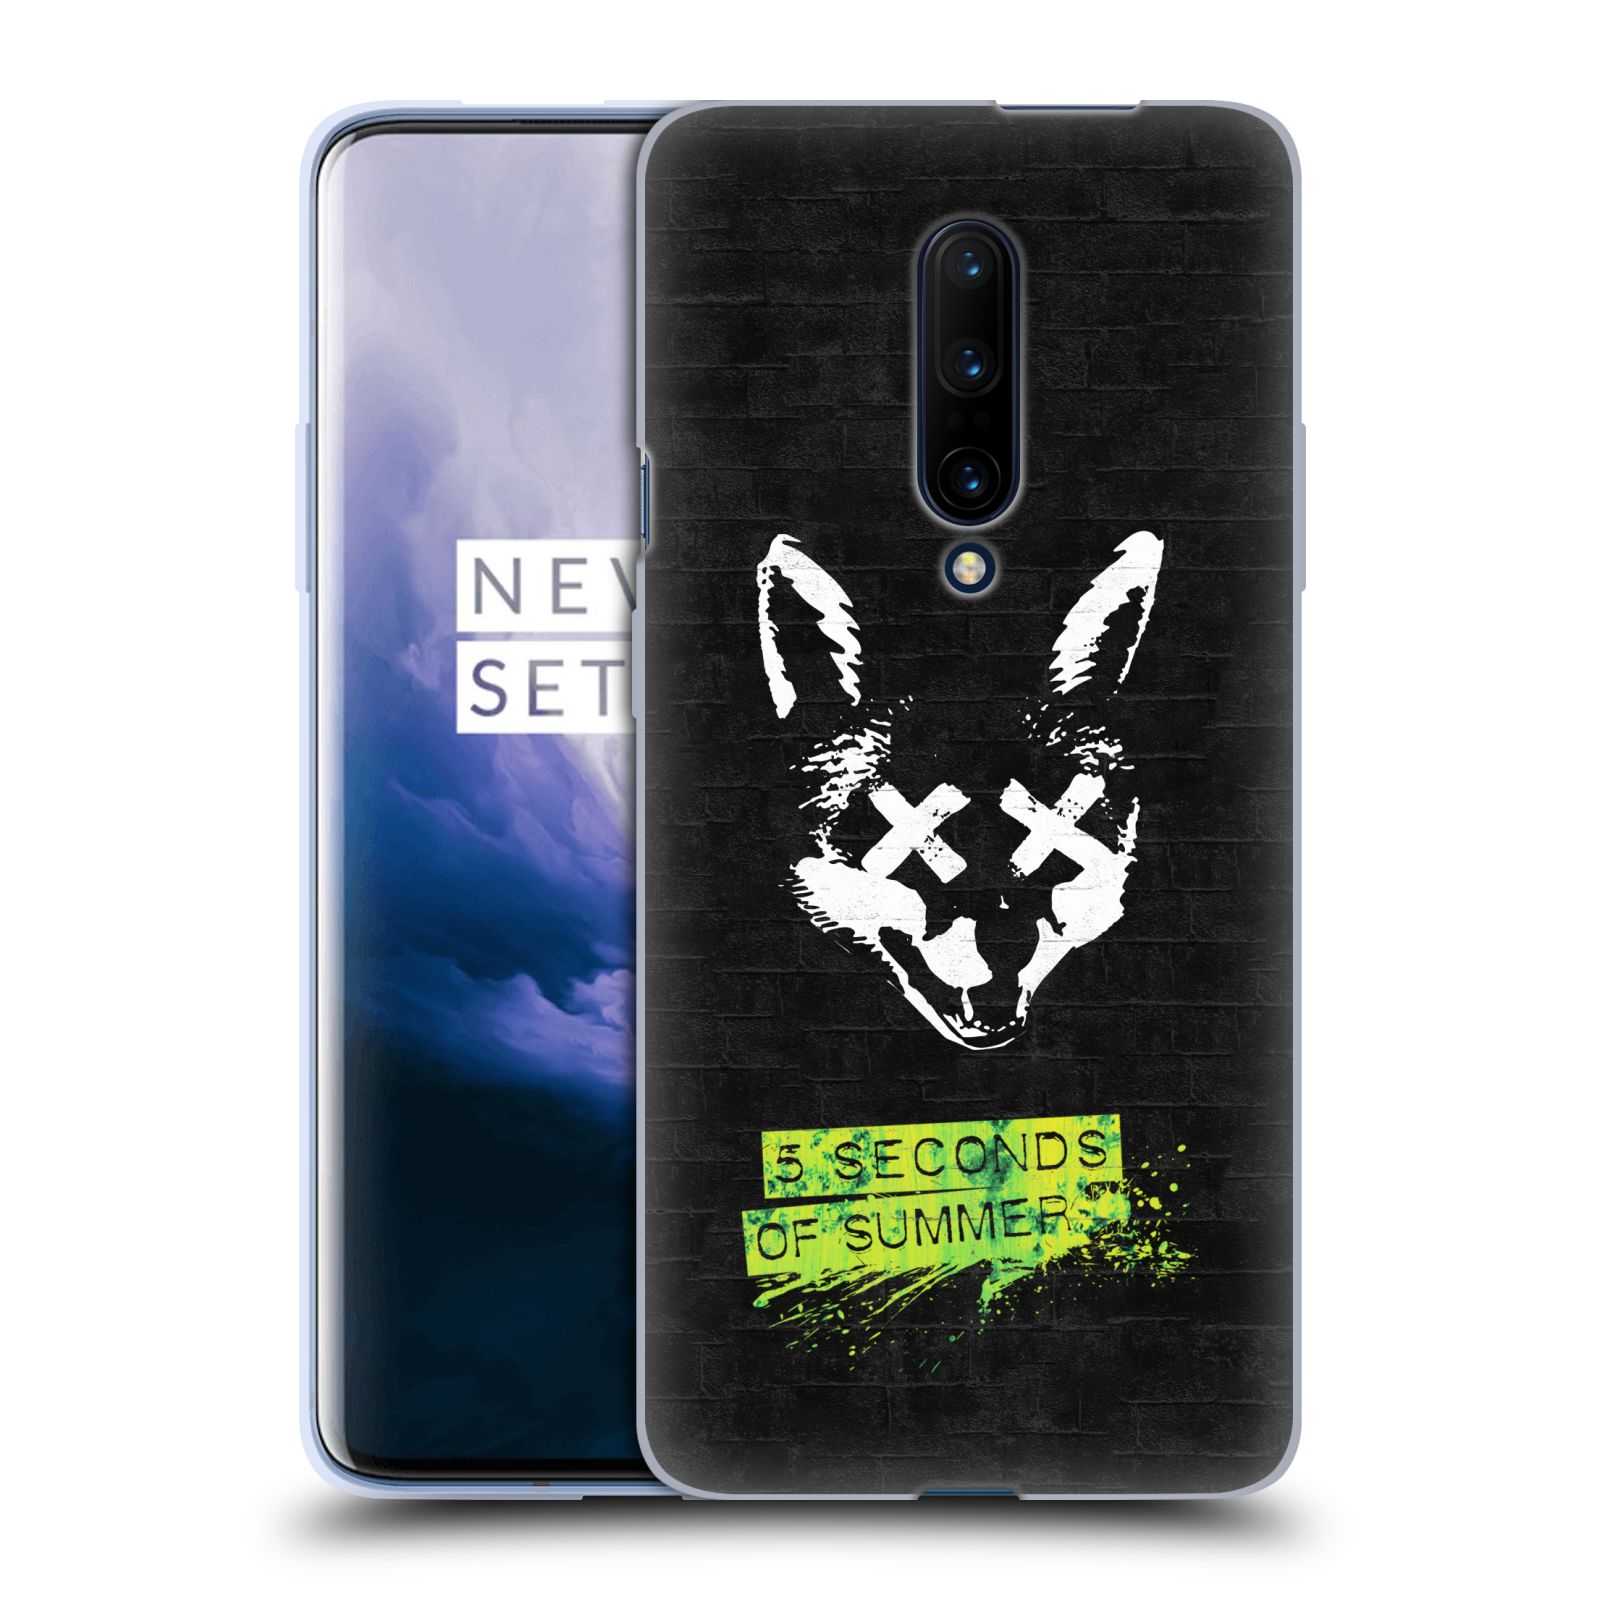 Silikonové pouzdro na mobil OnePlus 7 Pro - Head Case - 5 Seconds of Summer - Fox